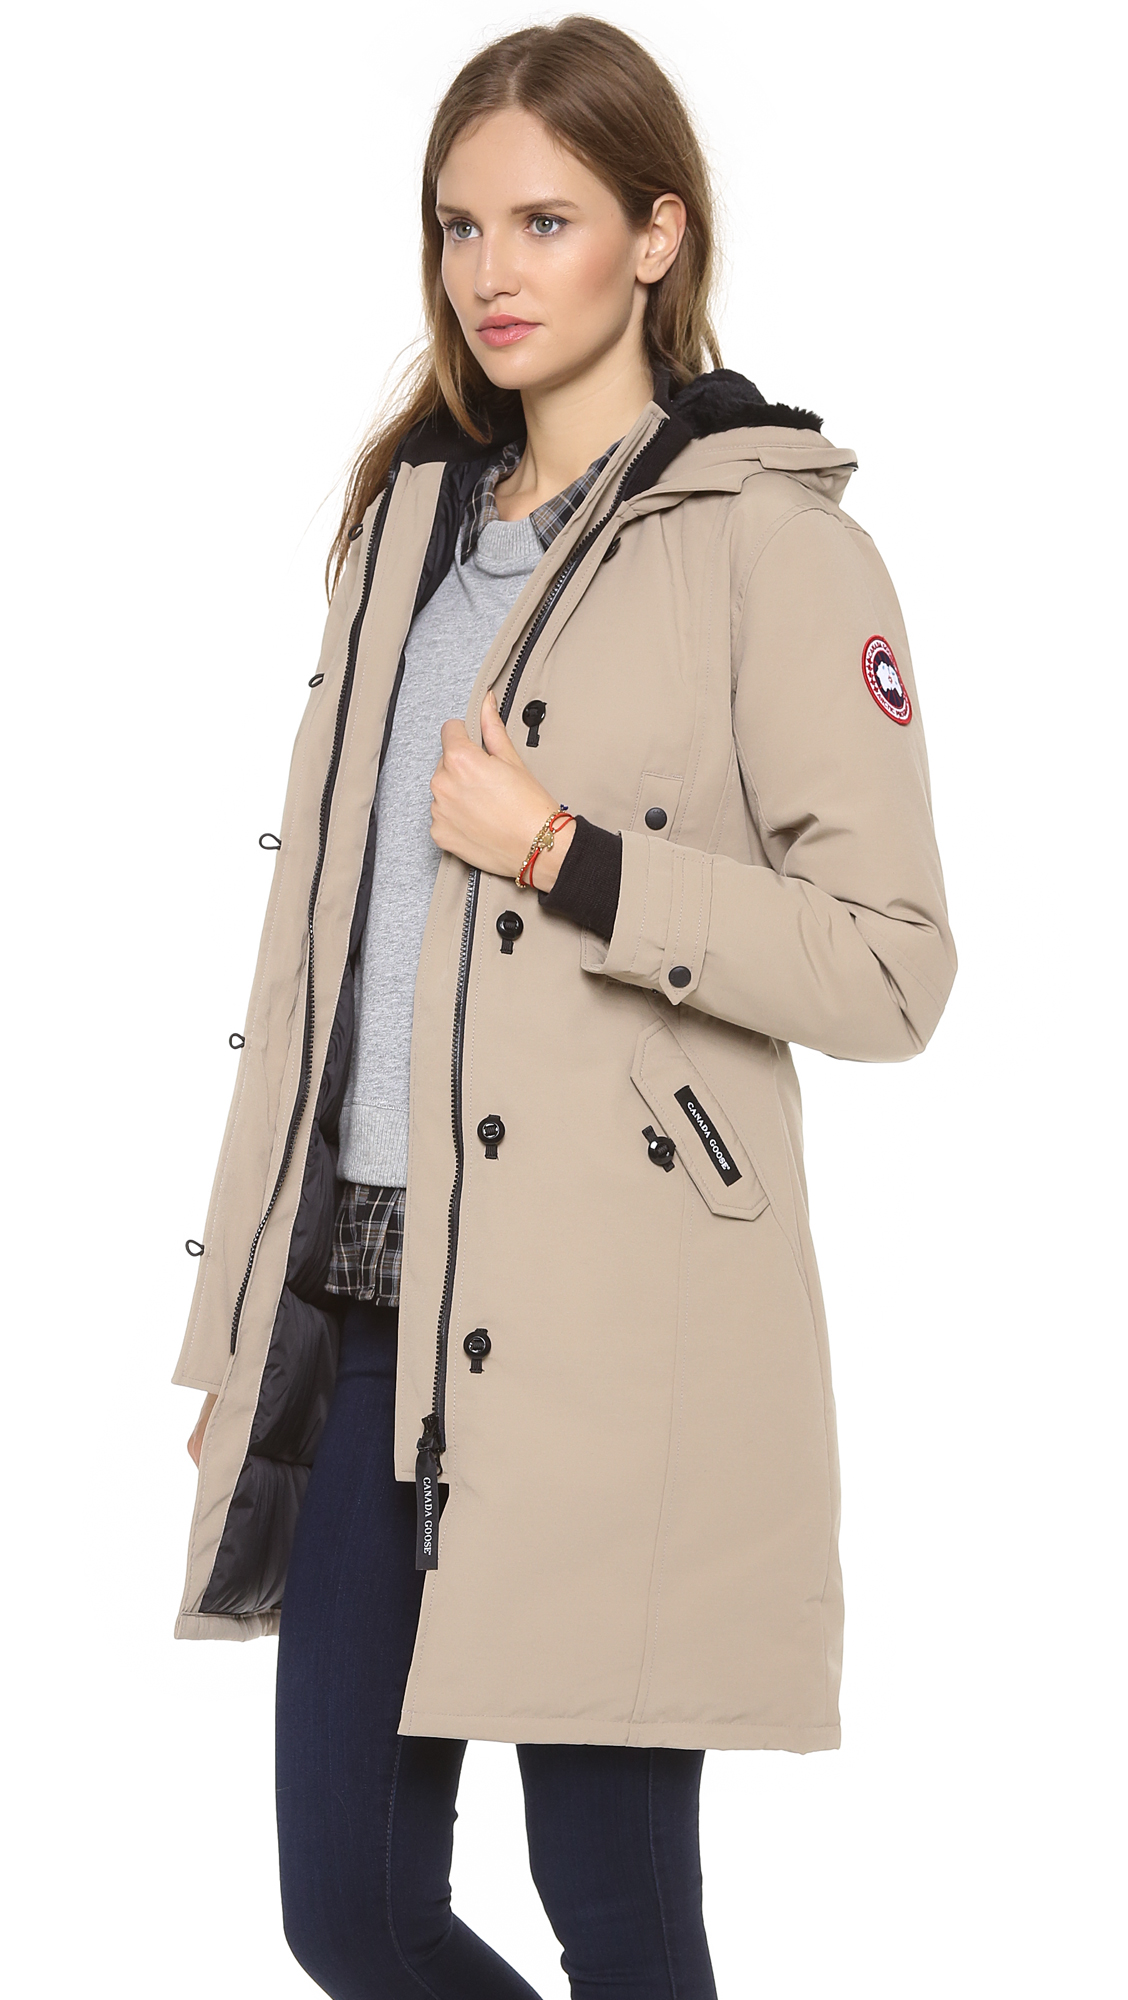 Aninimal Book: Lyst - Canada Goose Kensington Parka in Brown